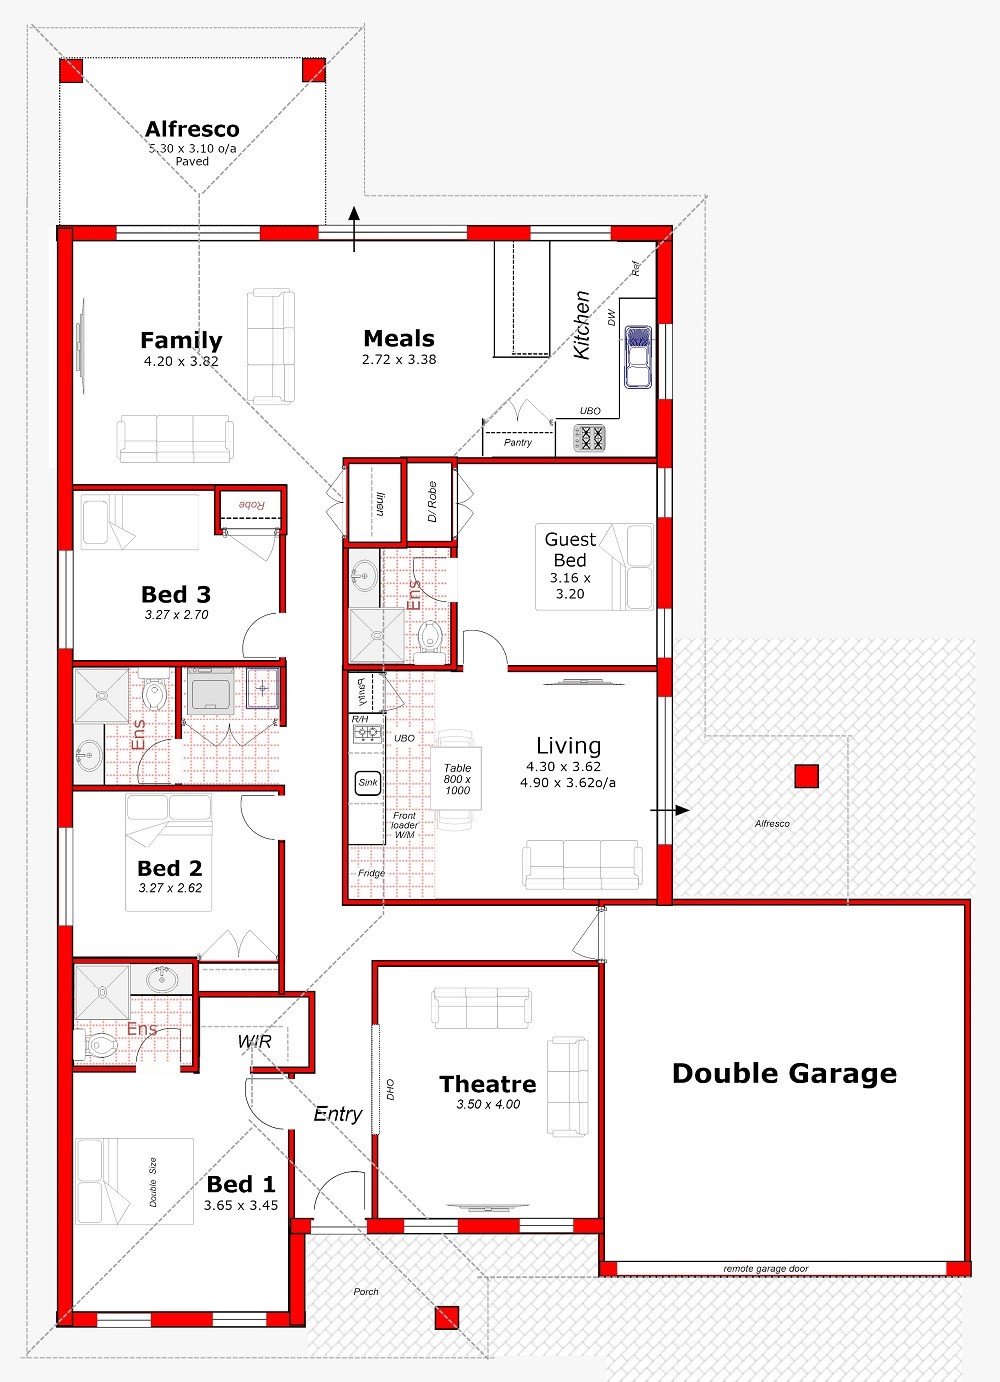 206-dual-living-home-design-independant-living-perth-builder.jpeg